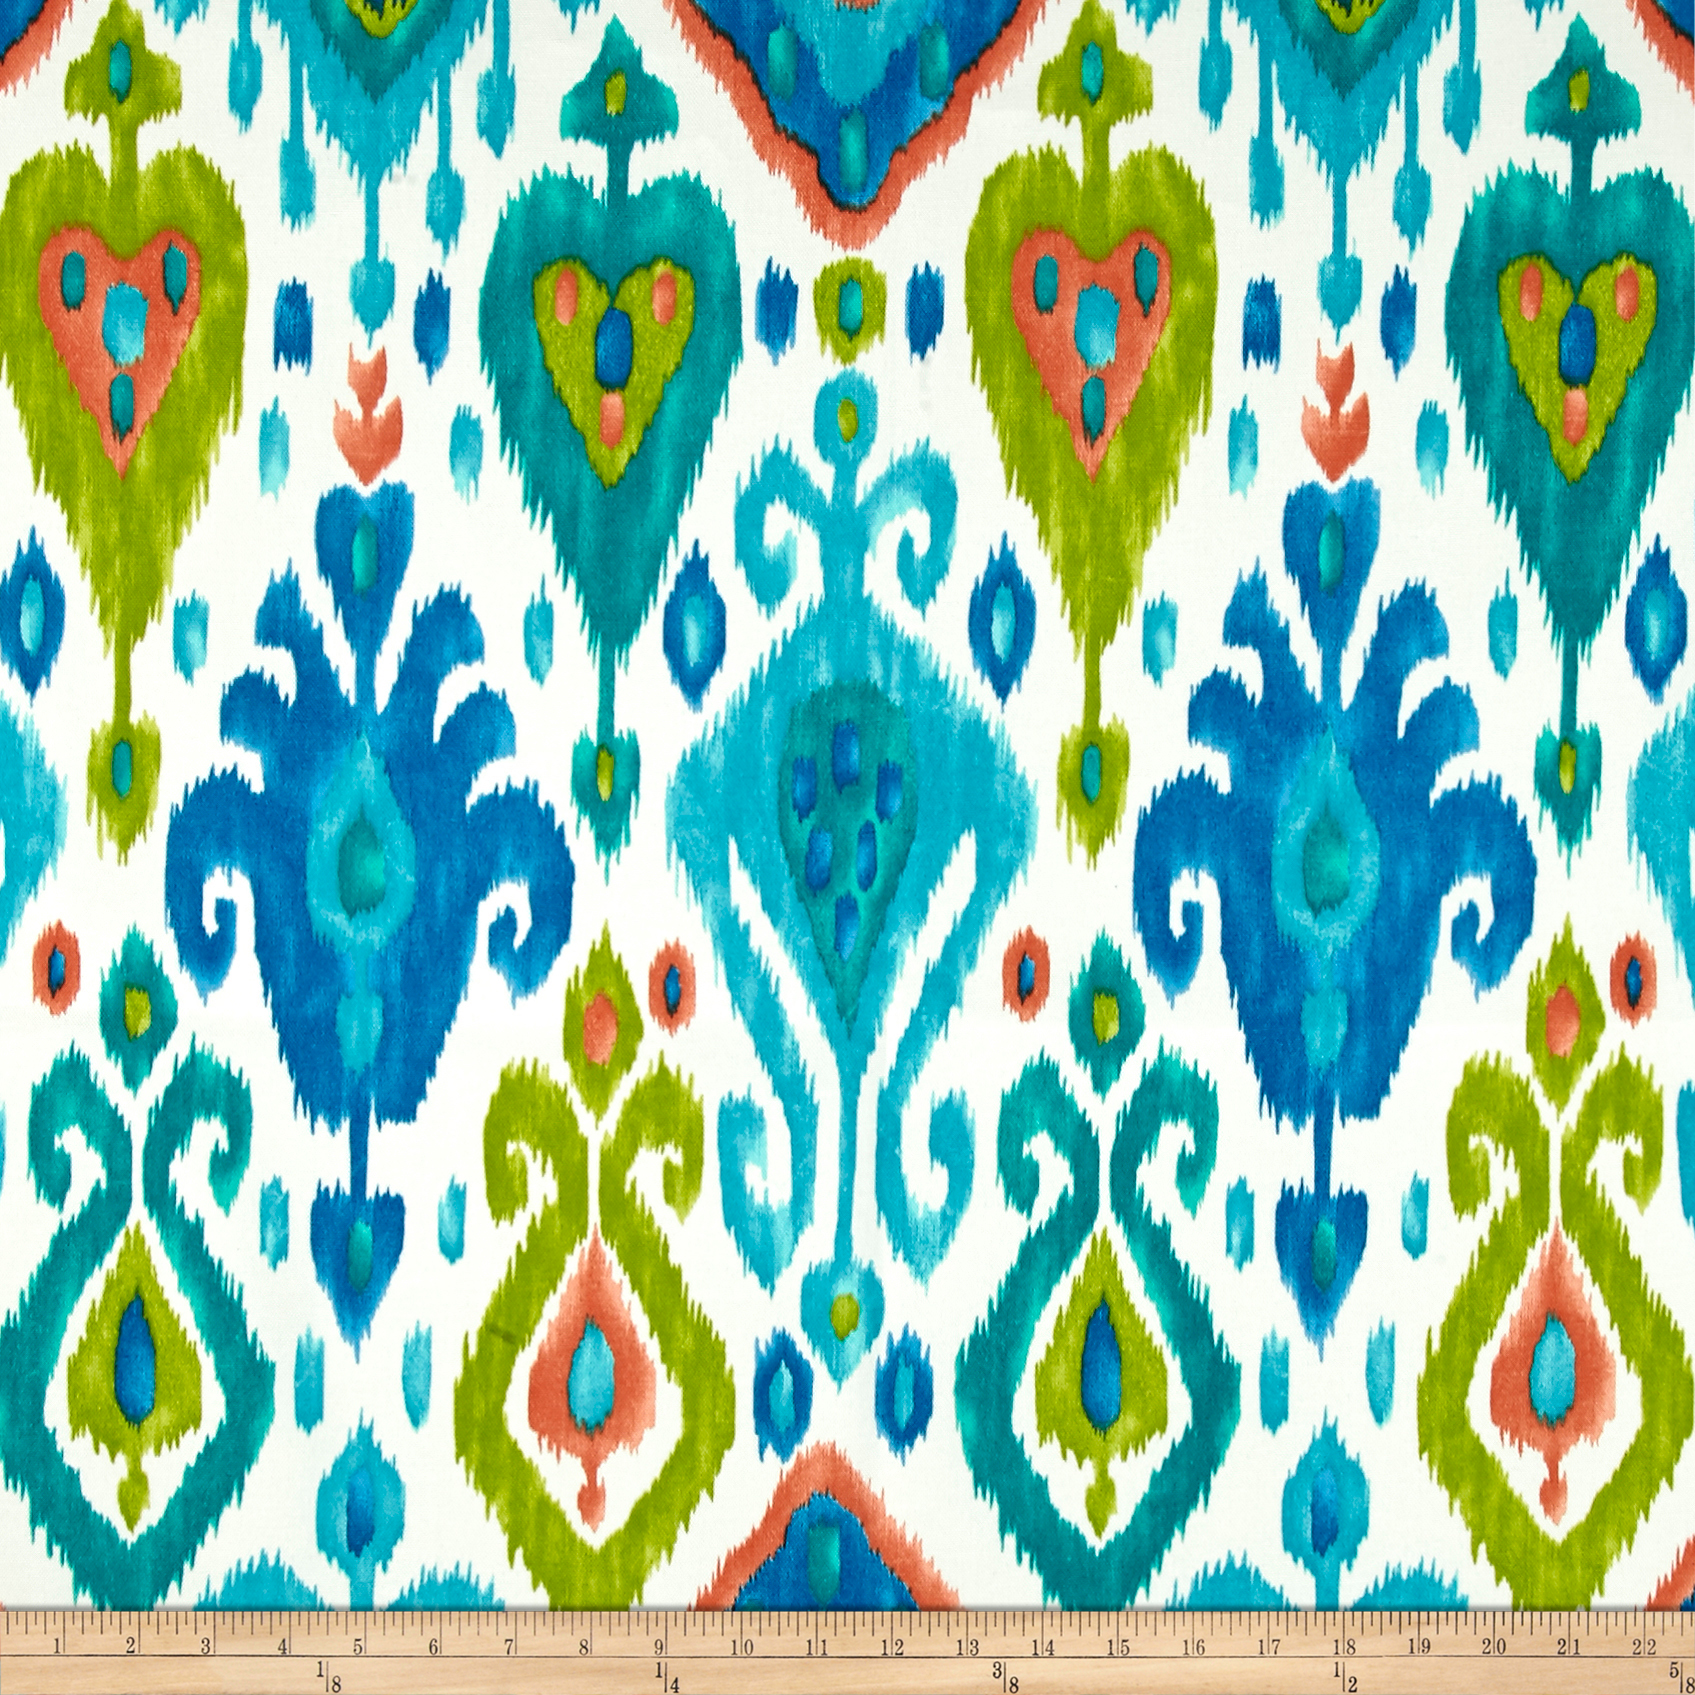 Richloom Solarium Outdoor Paso Caribe Fabric By The Yard by Richloom in USA